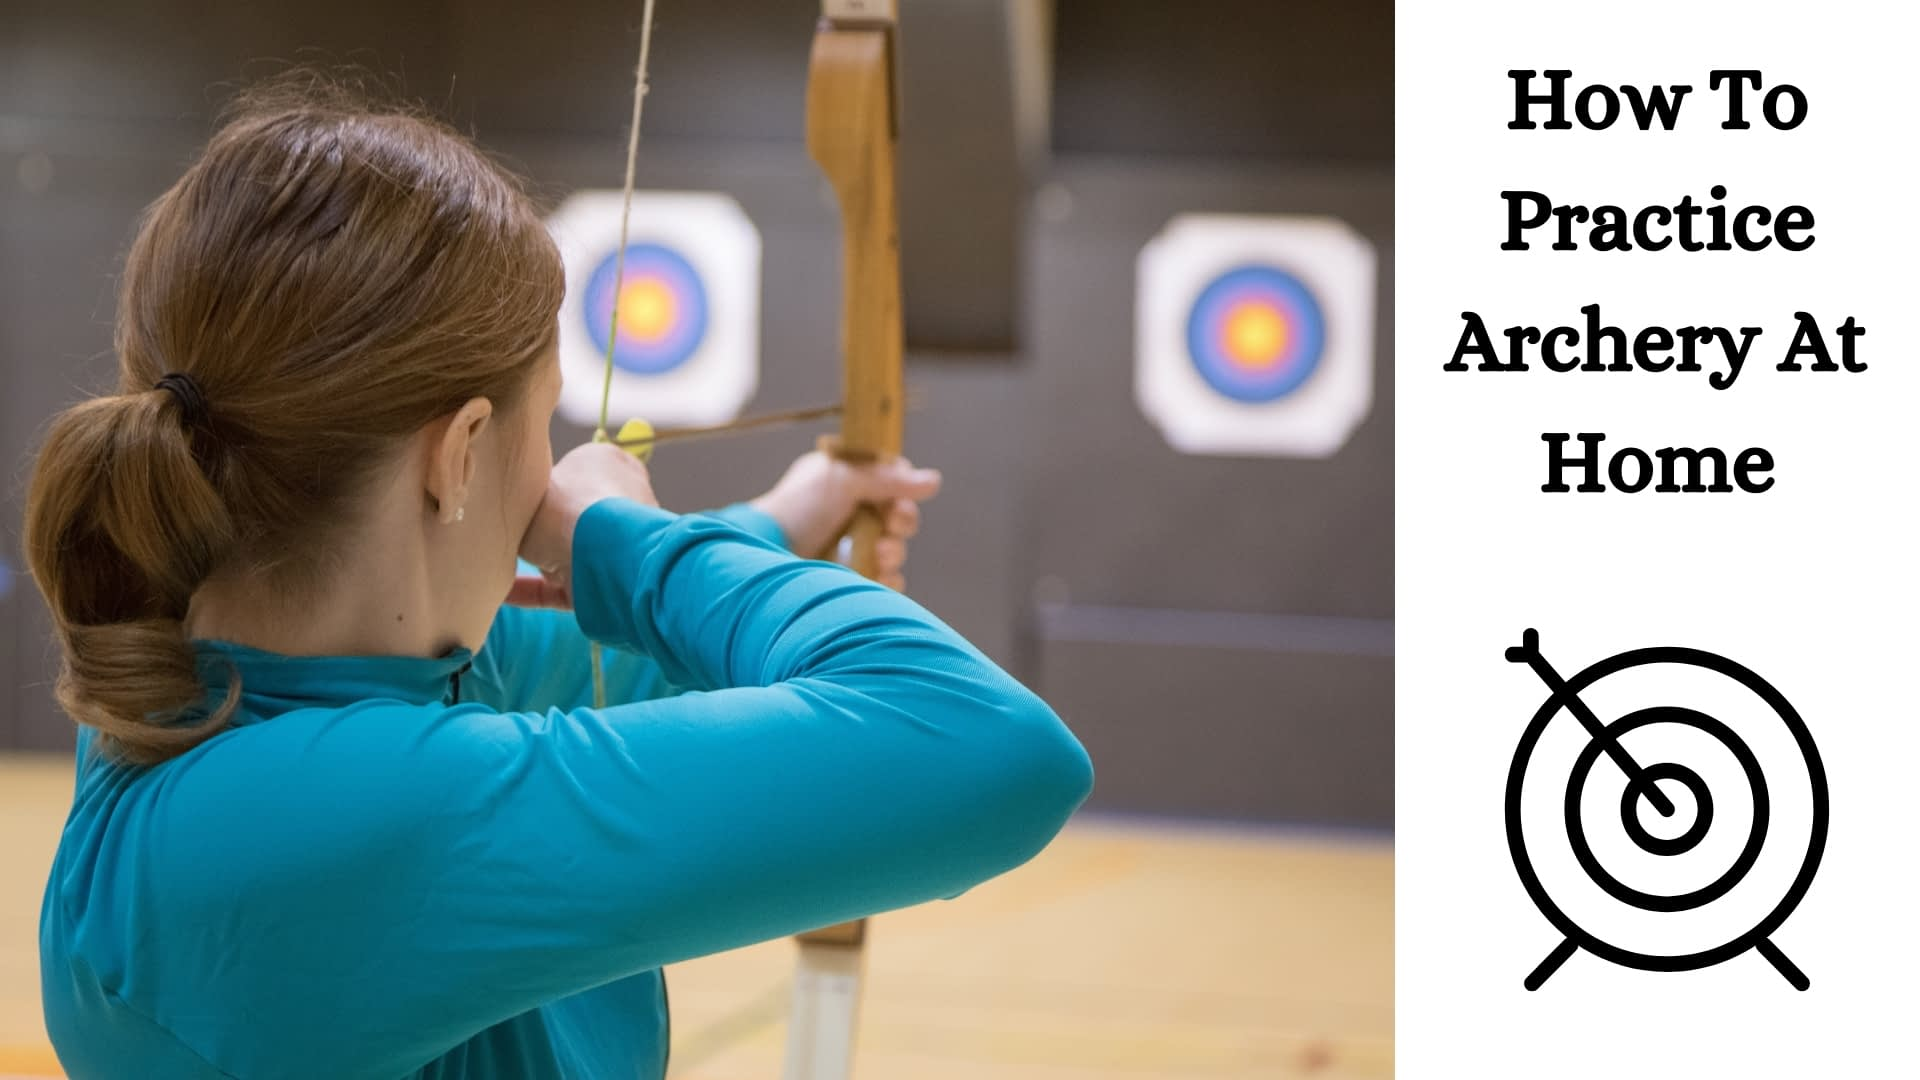 How to Practice Archery at Home